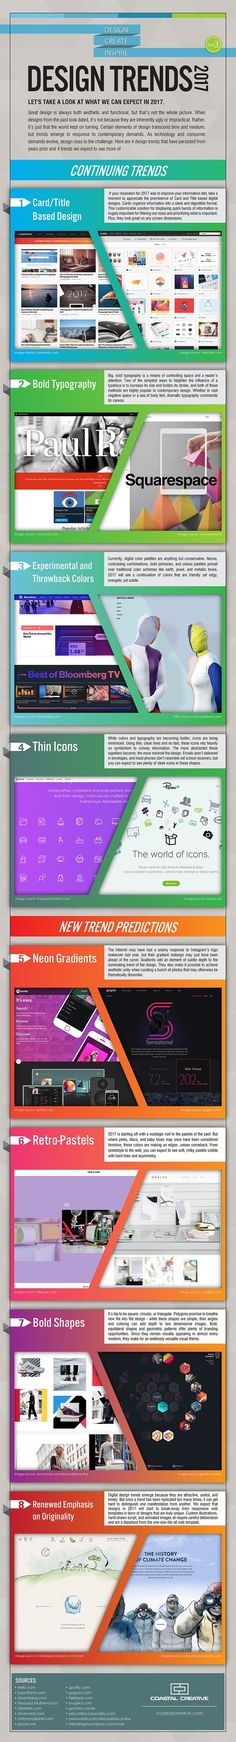 Design Trends 2017 - Infographic: